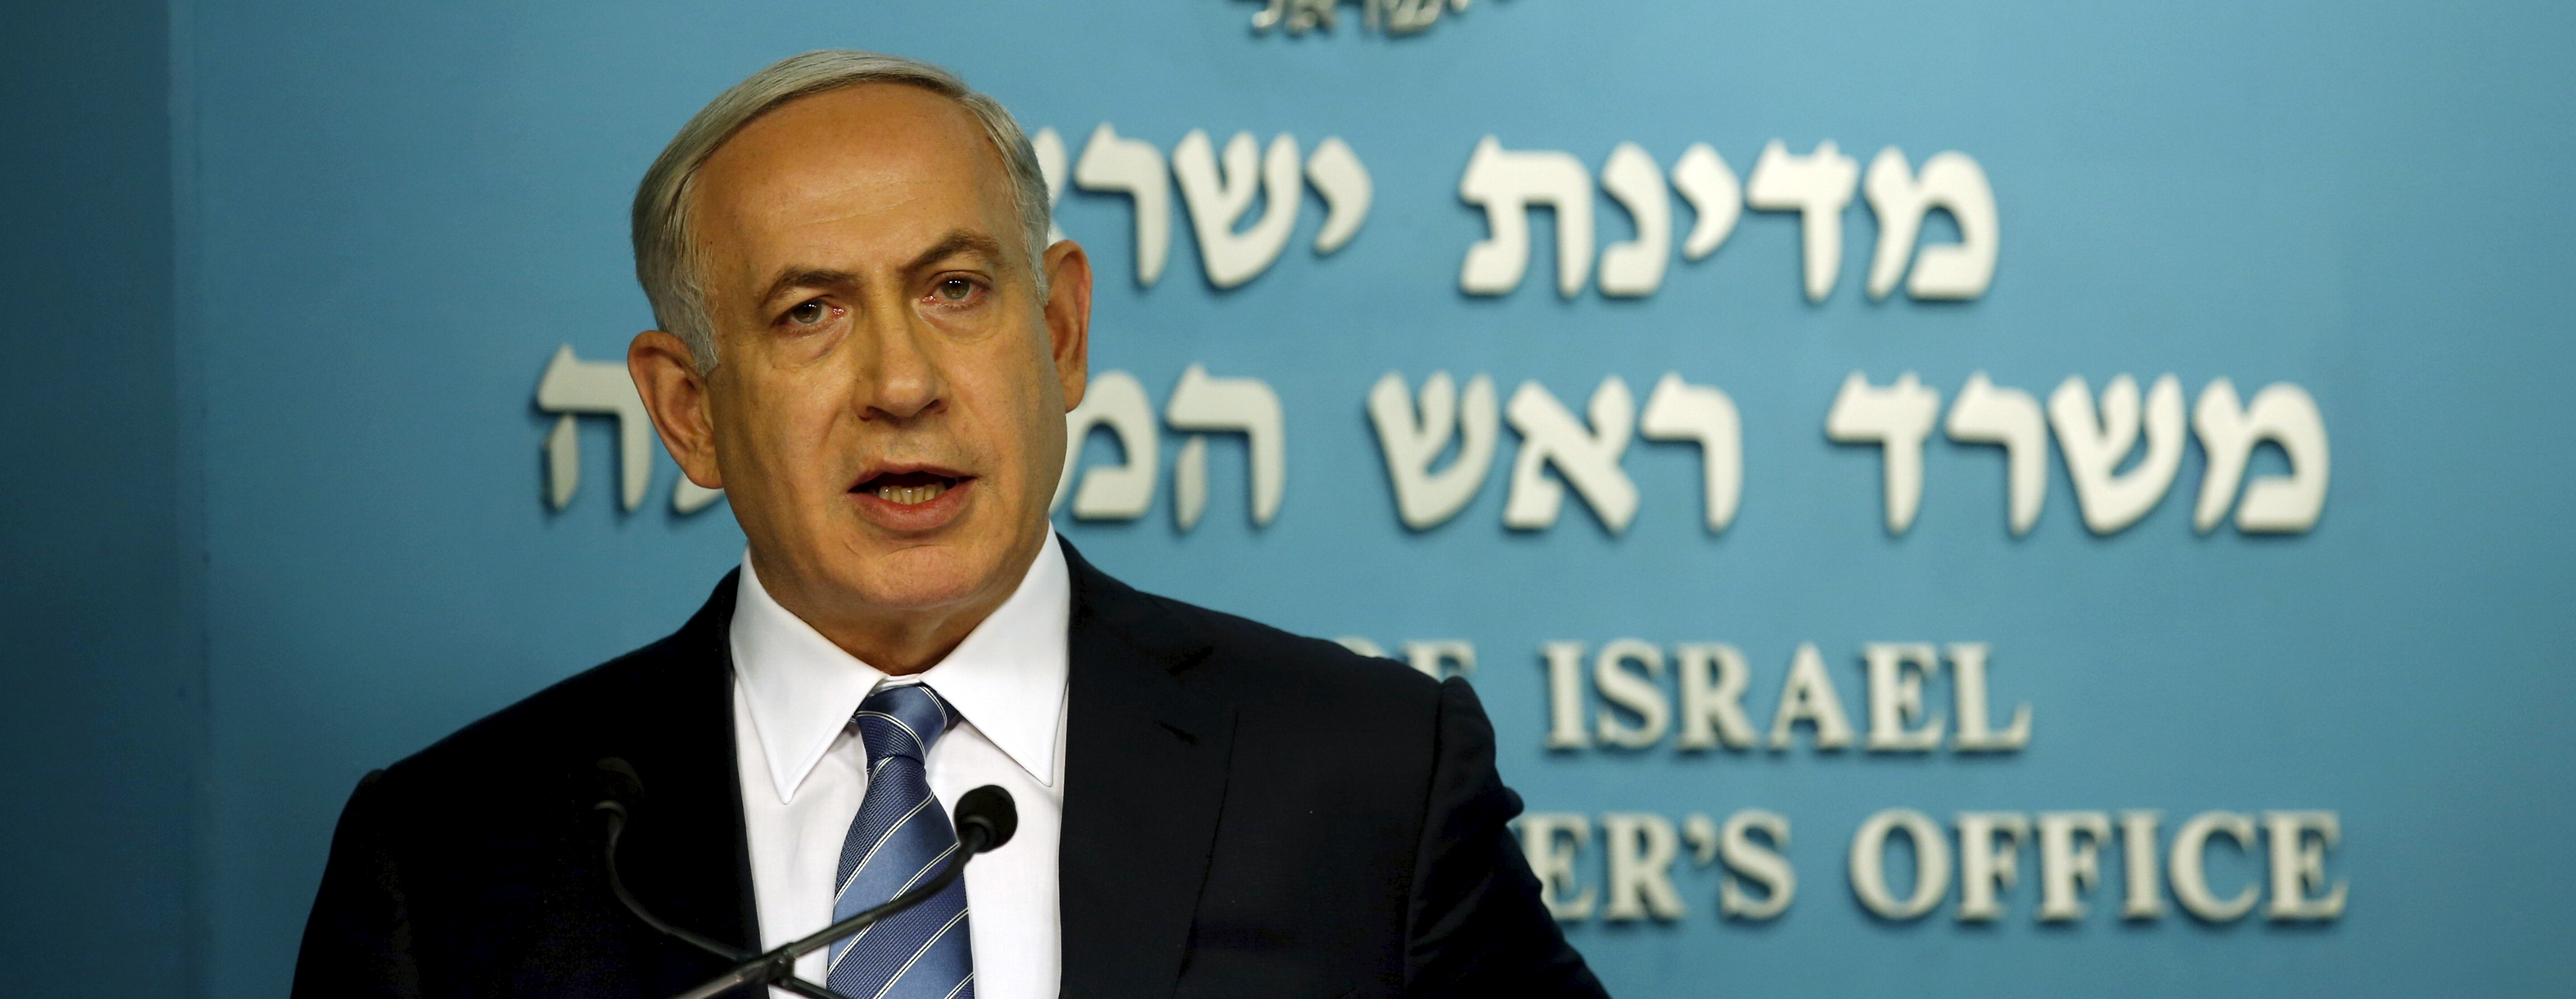 Israel's Prime Minister Benjamin Netanyahu speaks during a news conference in Jerusalem October 8, 2015. Four people, including an Israeli soldier, were stabbed and wounded near a military headquarters in Tel Aviv on Thursday, police and ambulance sources said, as a rash of such Palestinian attacks spread to Israel's commercial capital. The assailant was shot and killed by another soldier as he fled, a police spokeswoman said. REUTERS/Ronen Zvulun - RTS3LZ3